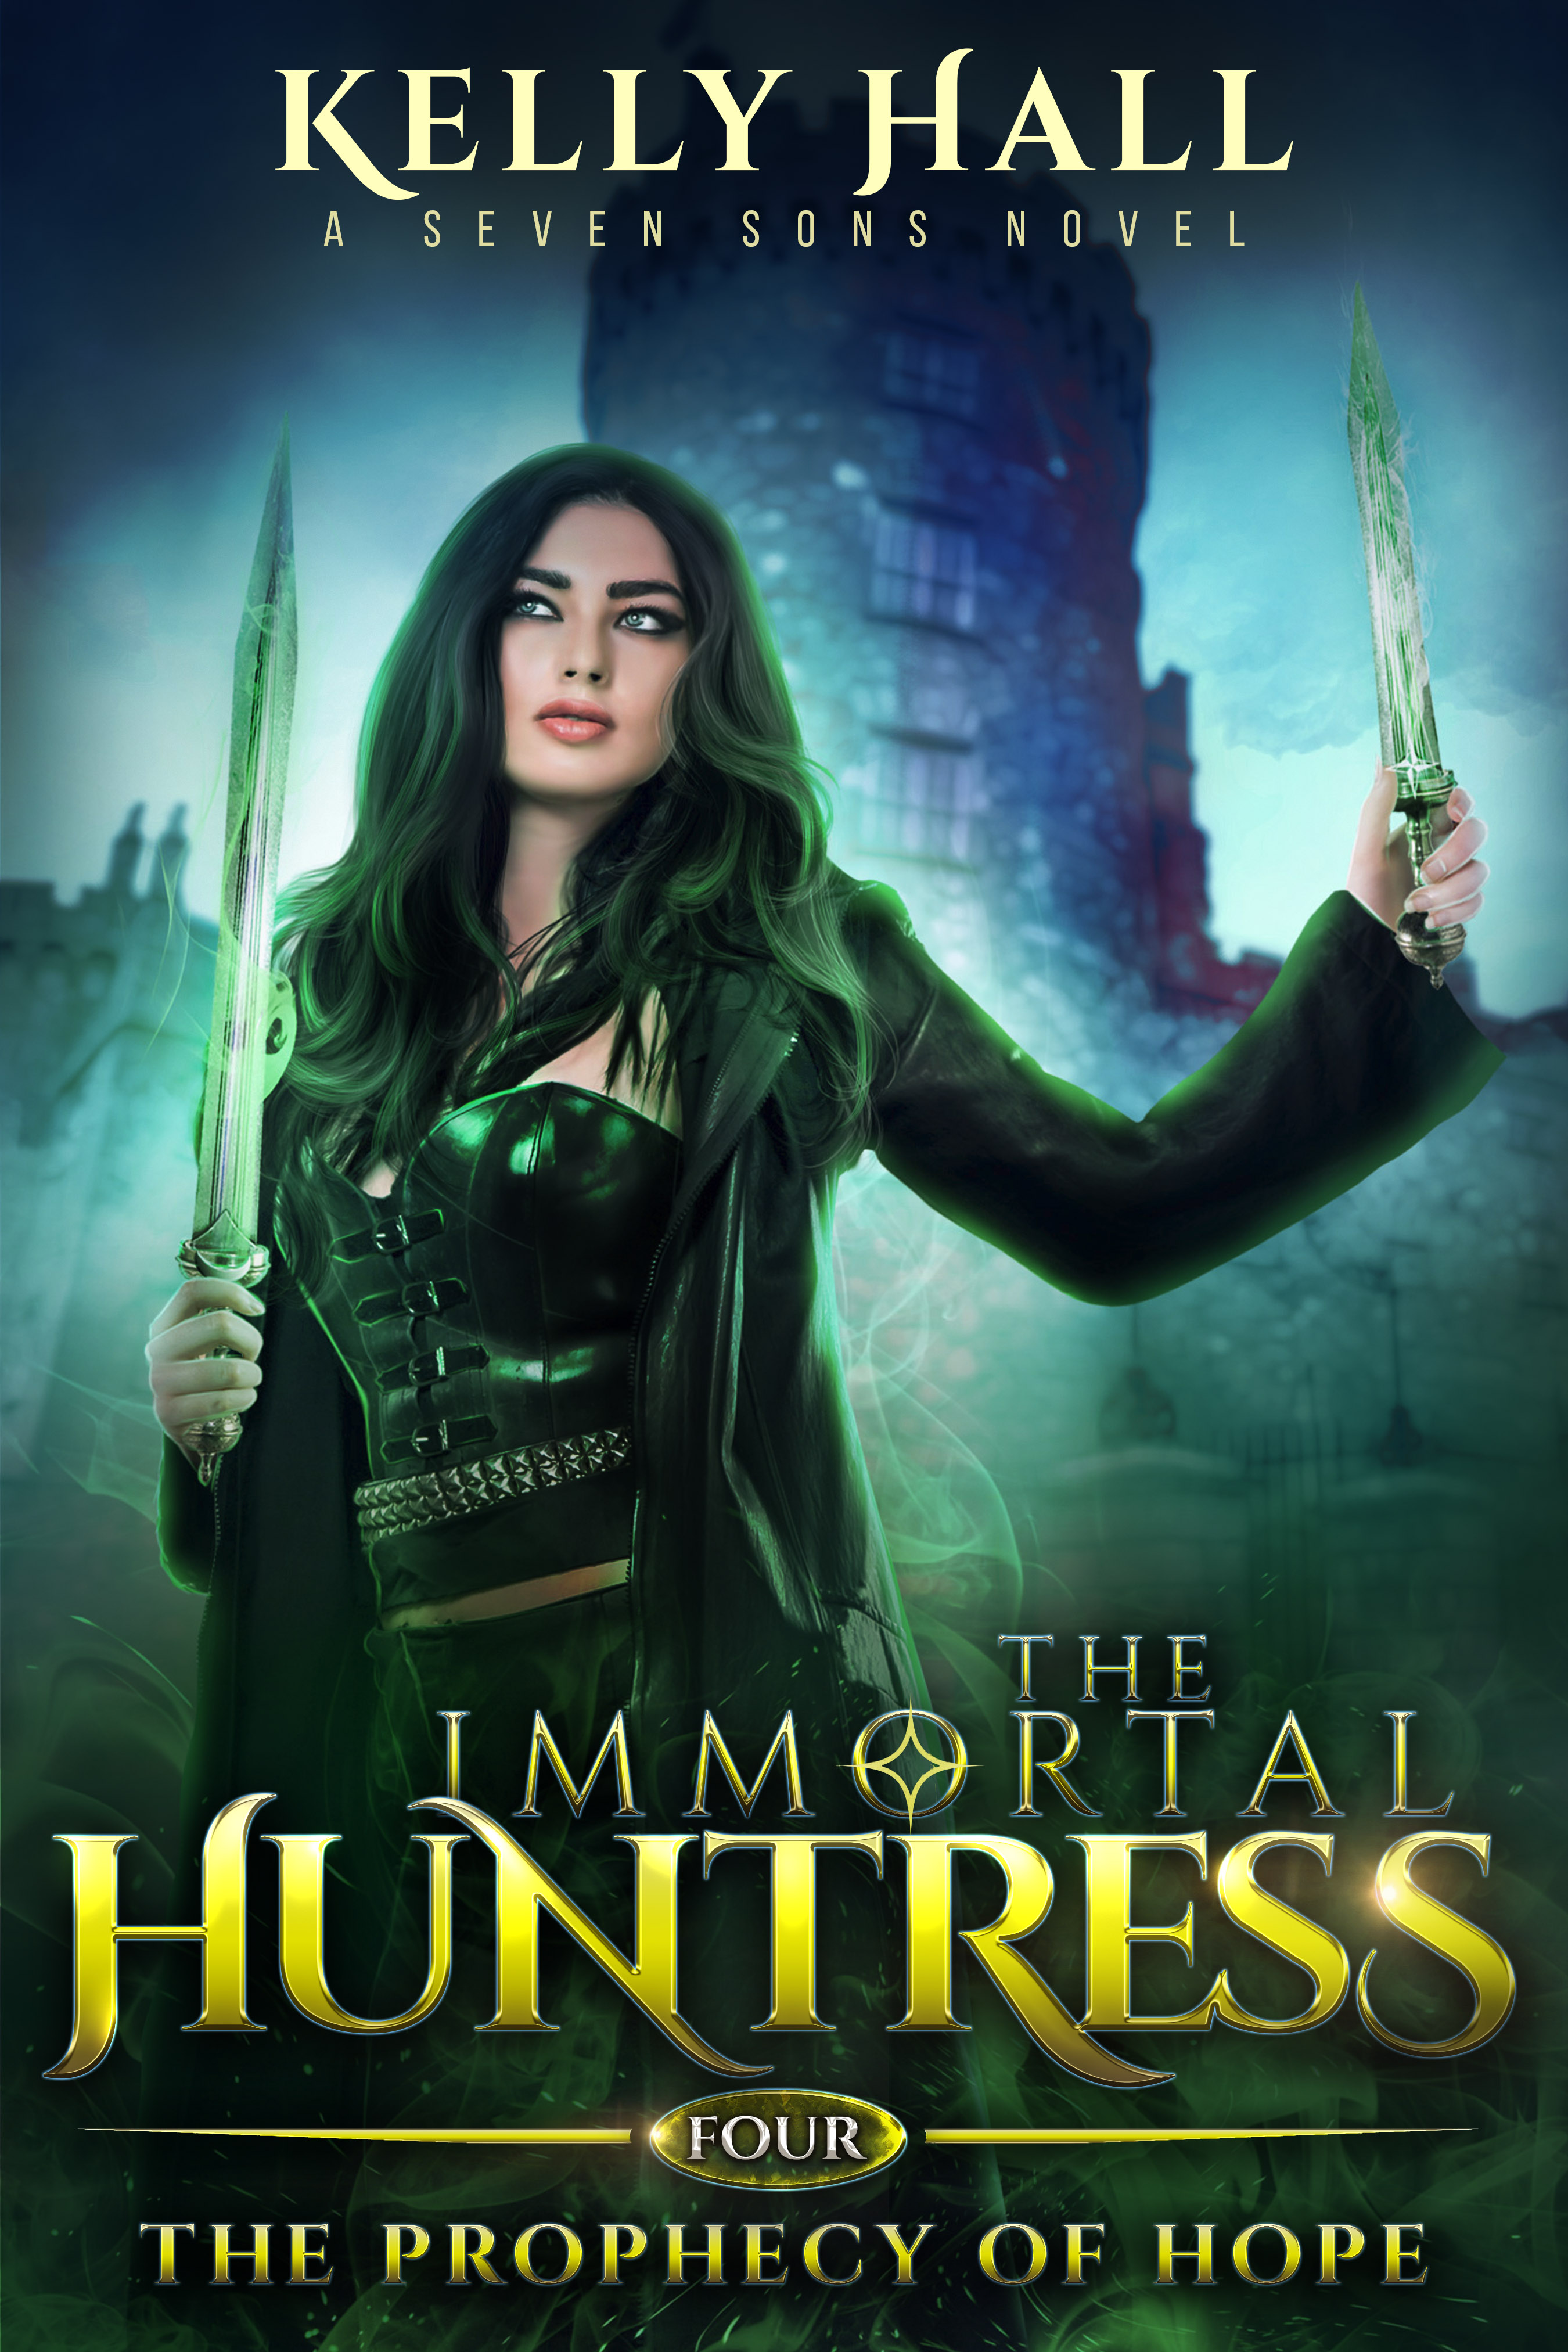 ImmortalHuntress Book 4